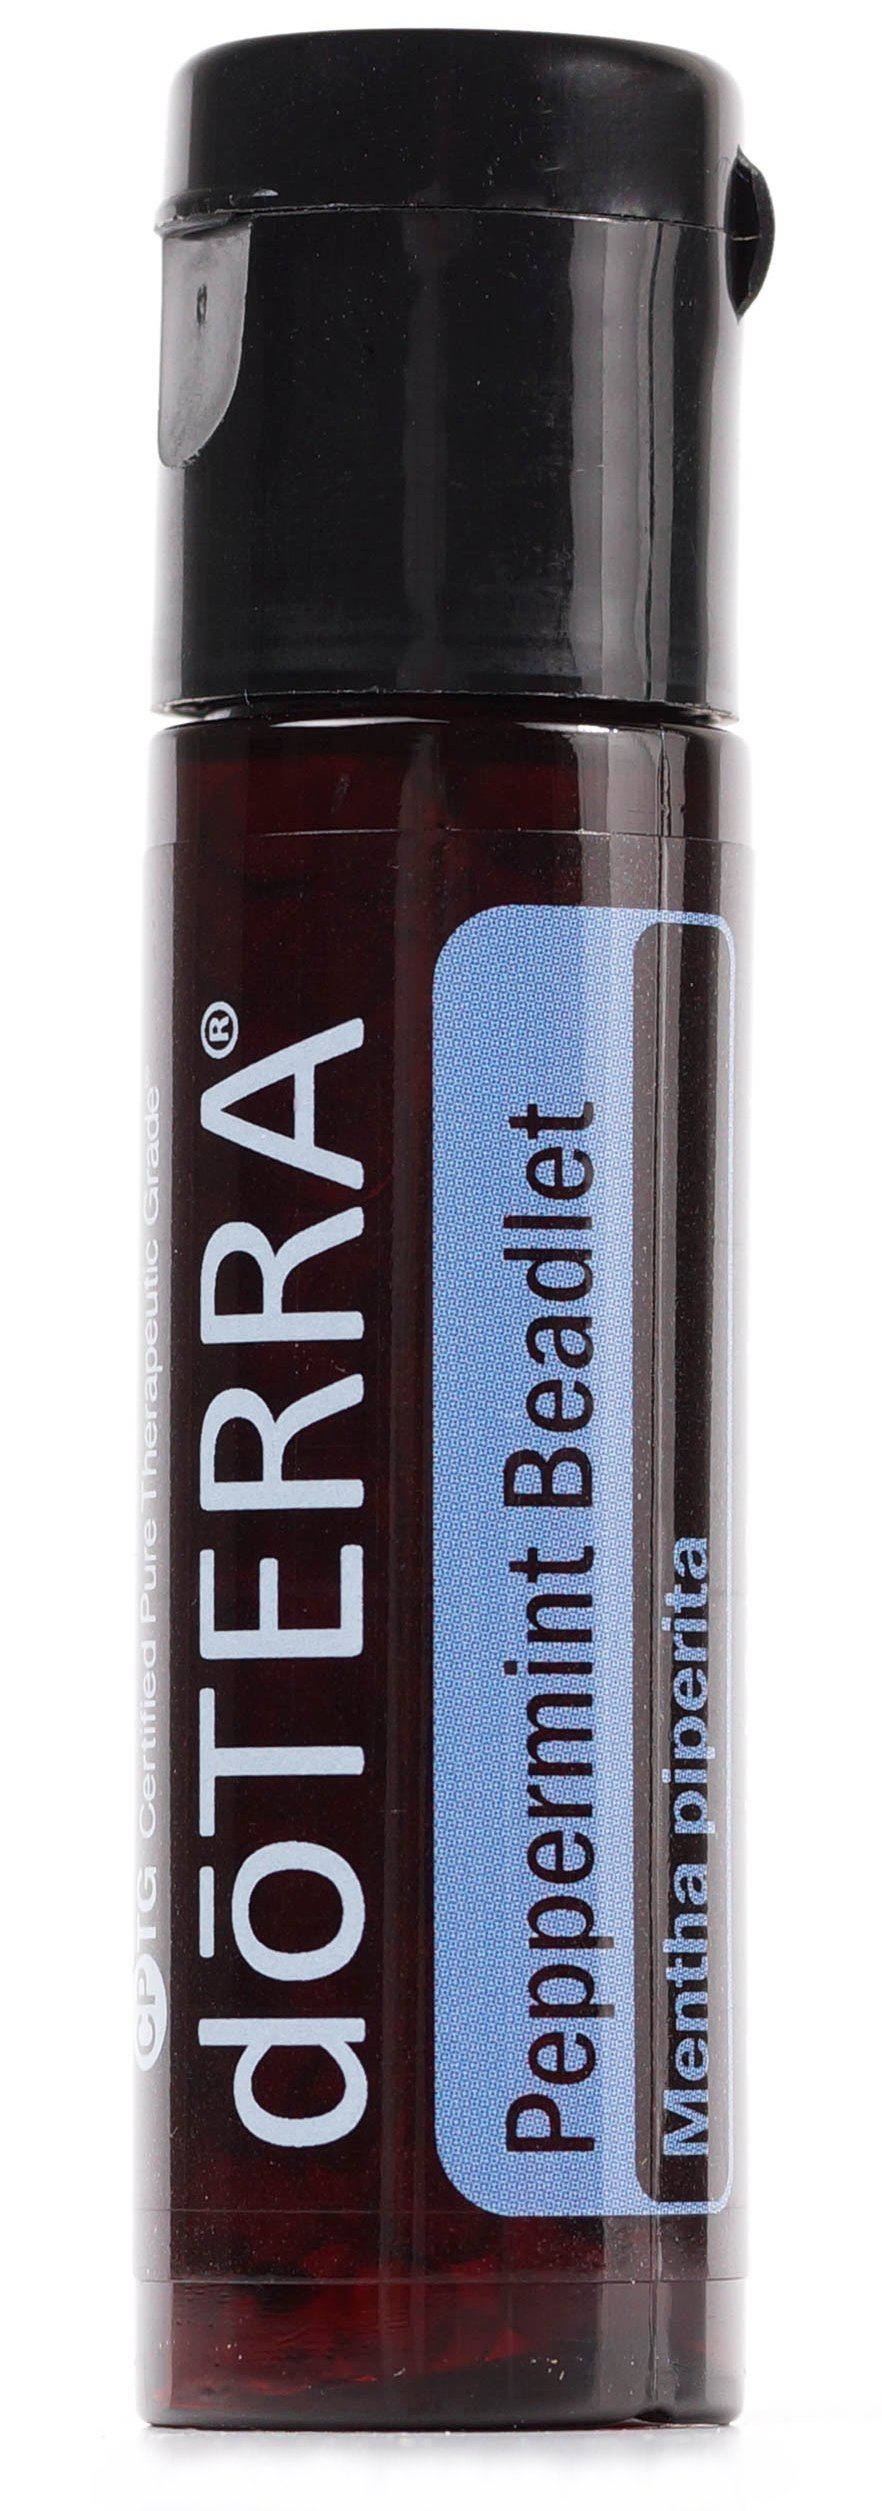 doTERRA - Peppermint Beadlet Essential Oil - Promotes Clear Breathing, Healthy Respiratory Function, and Digestive Health; for Diffusion, Internal, or Topical Use - 125 Beadlets by DoTerra